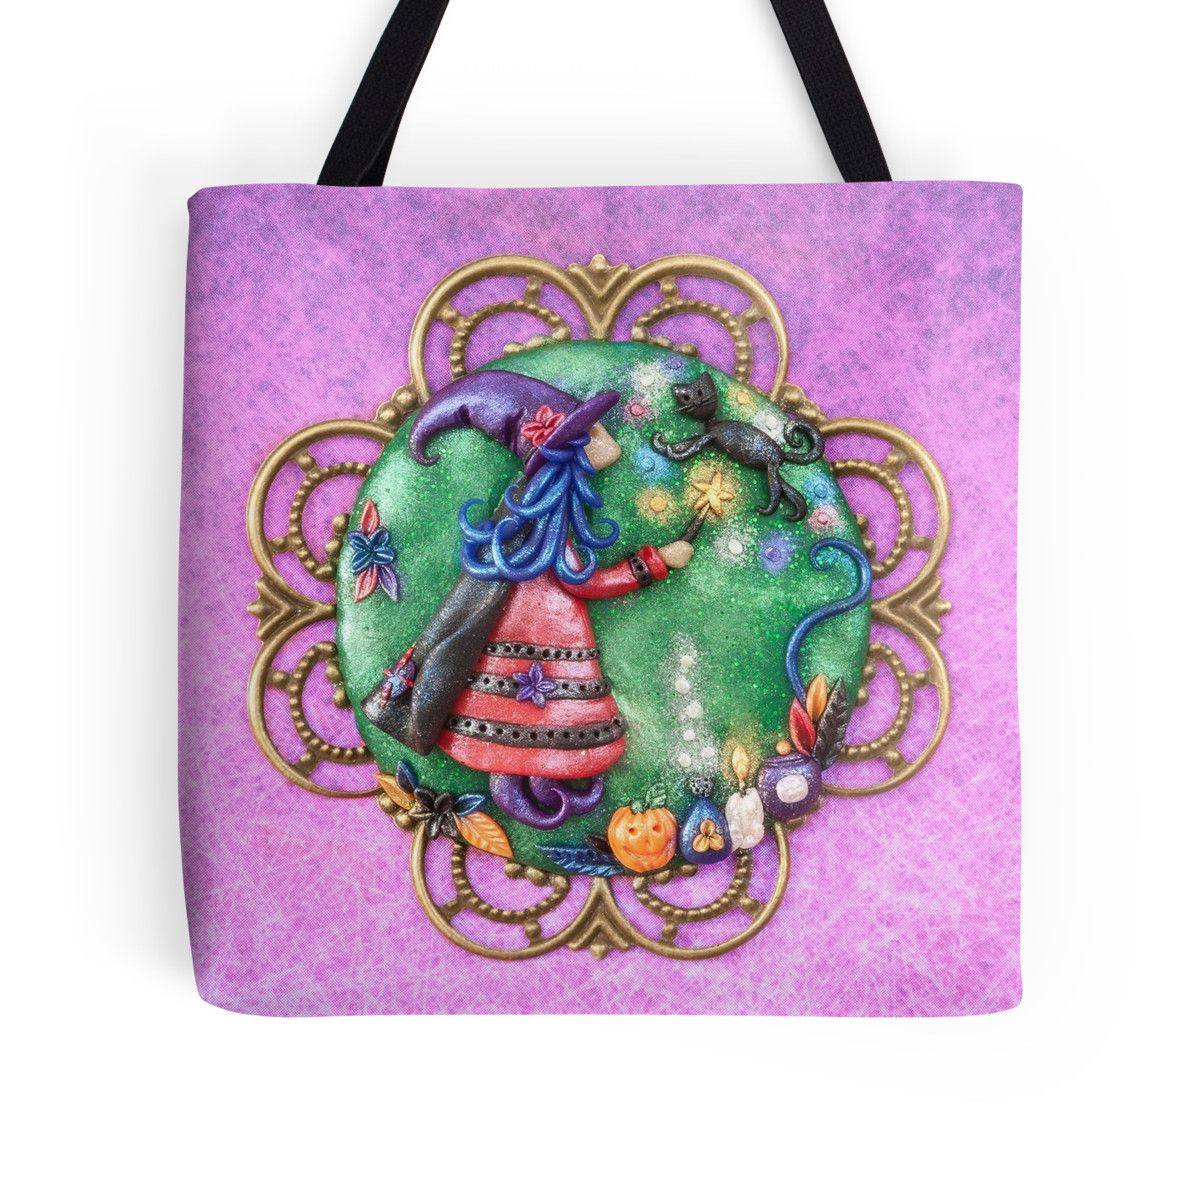 $27.50 #totebag, #totebags, #witchtotebag, #halloweentotebag, #trickortreatbag, #witchart, #shoulderbag, #shoppingbag, Witch Tote Bag, Fairy Tale, Witch Love, For Witch Lovers, Witch with Wand, Black Cat, Witch Art, Shoulder Bag, Texture, Green and Pink, Shopping Bag Practicing It's not always easy being a witch's best friend!